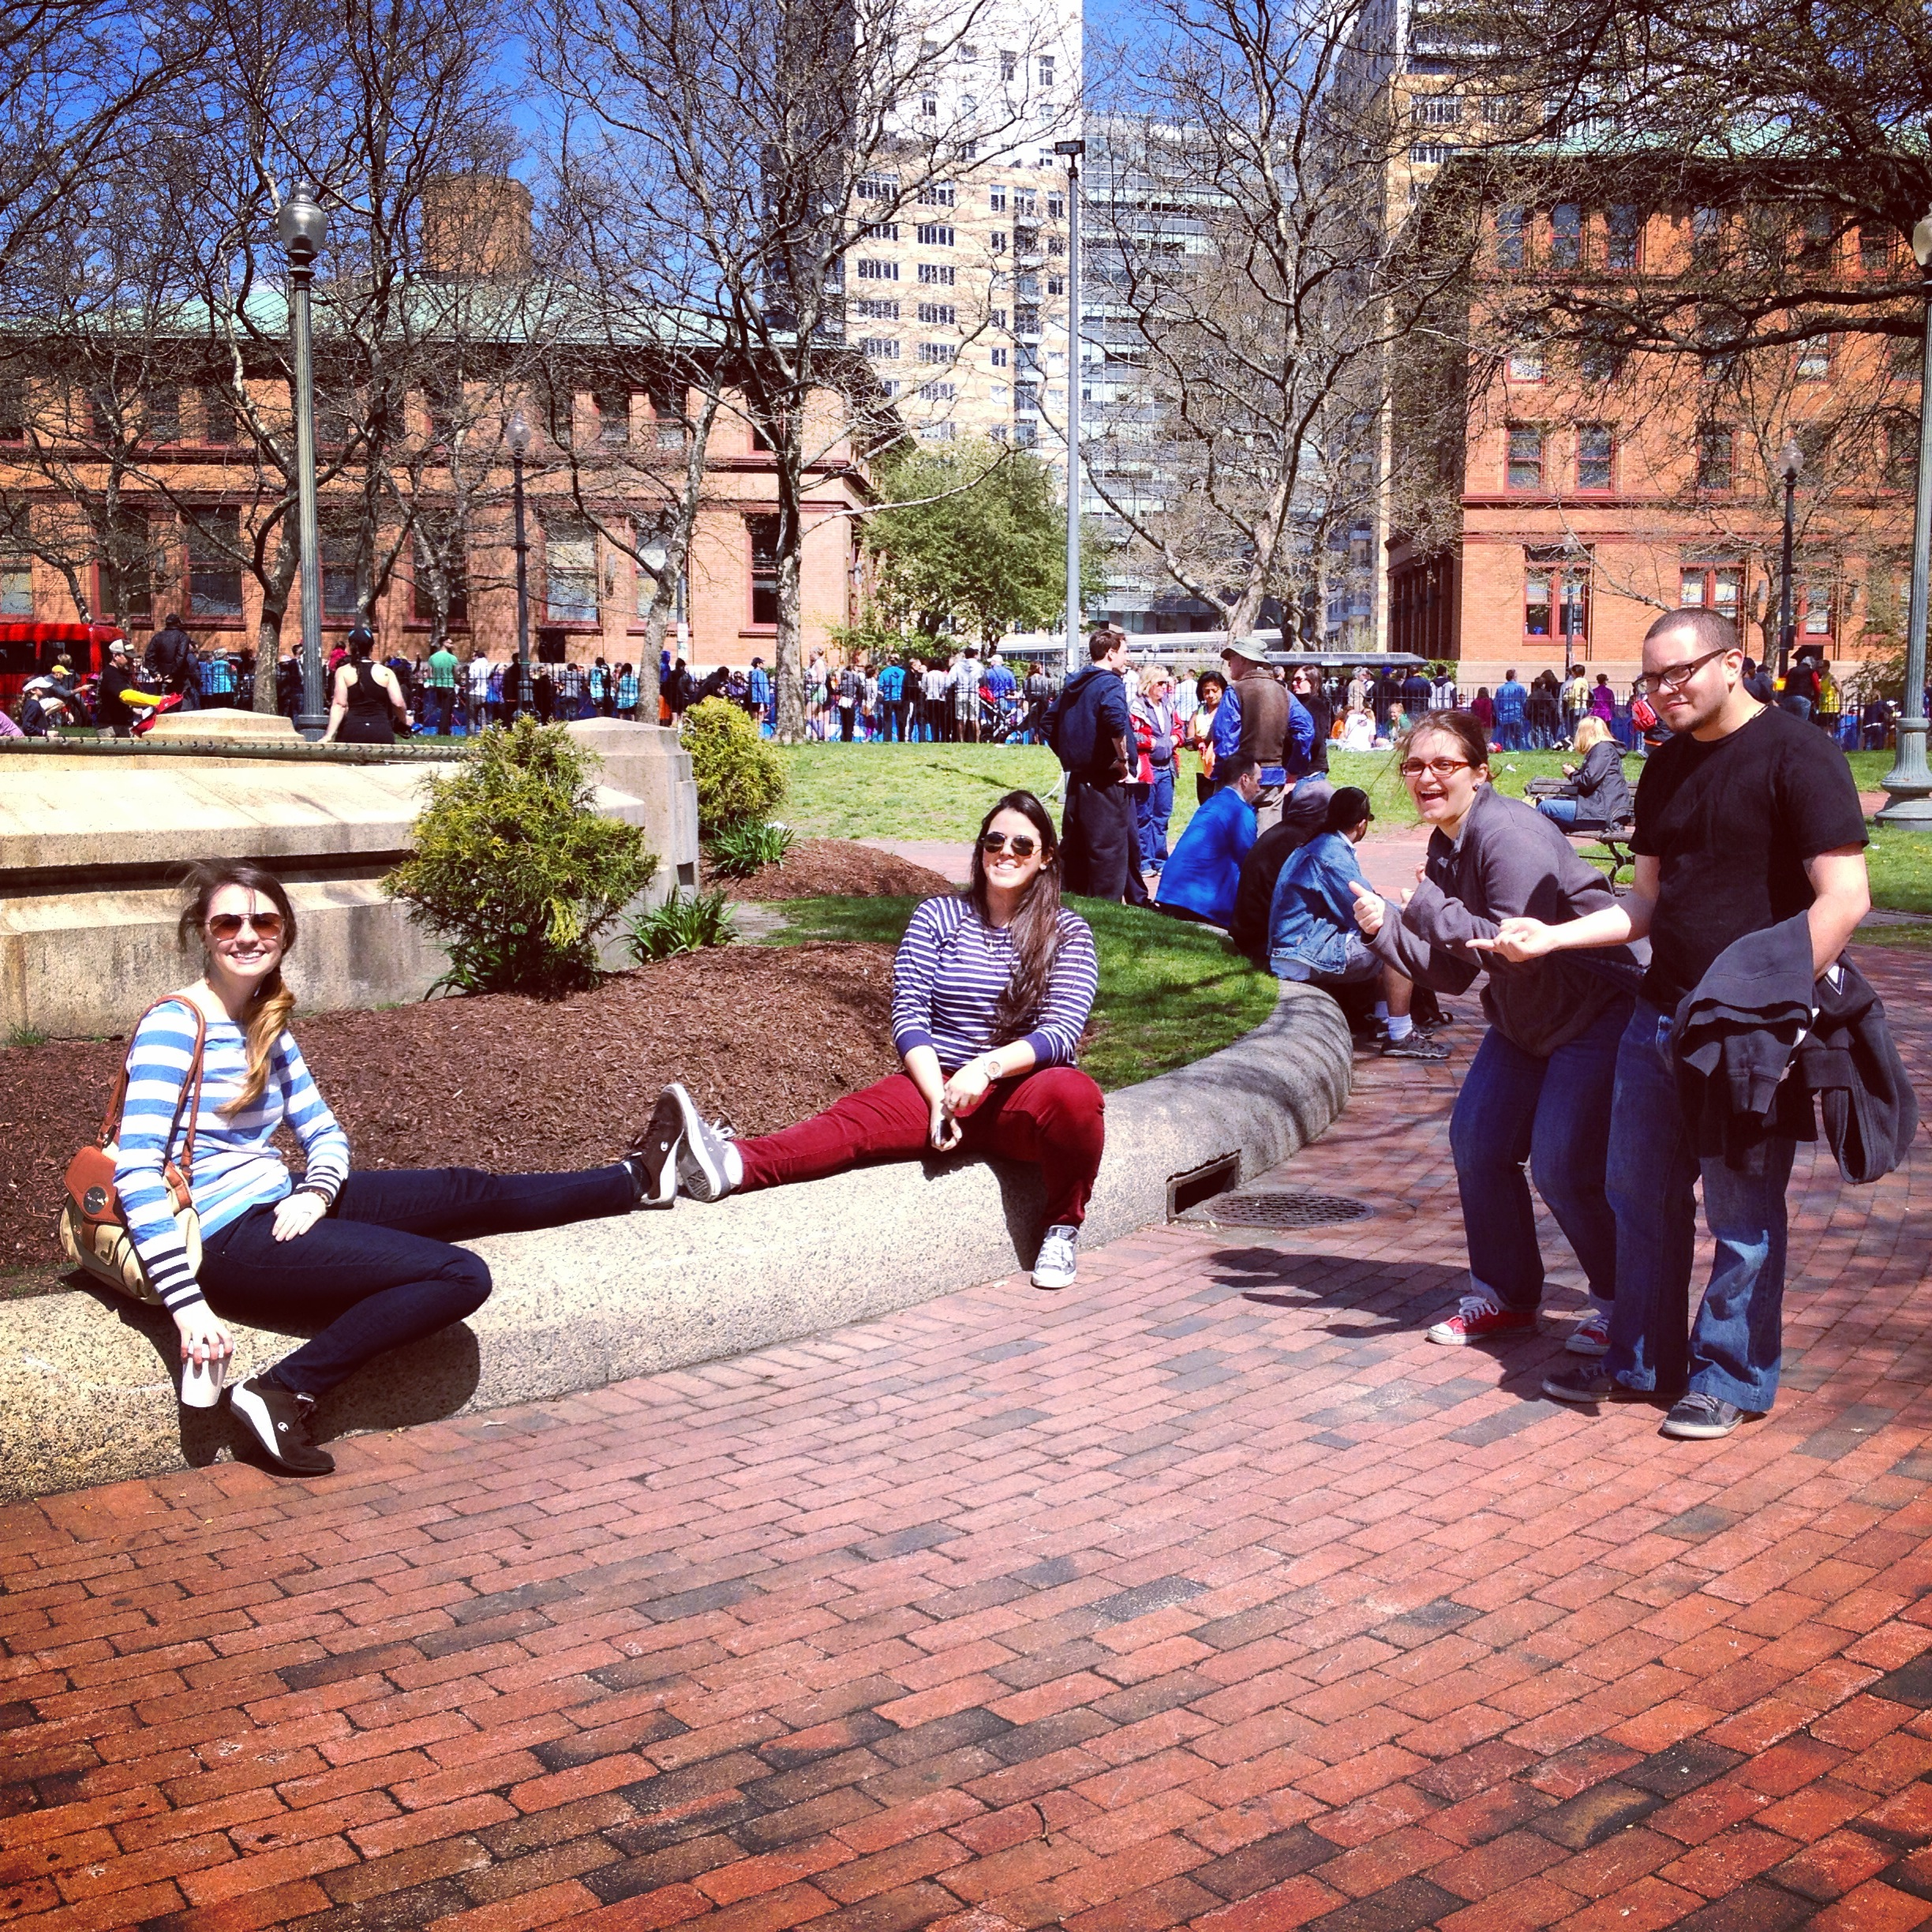 Providence. Just chillaxing.